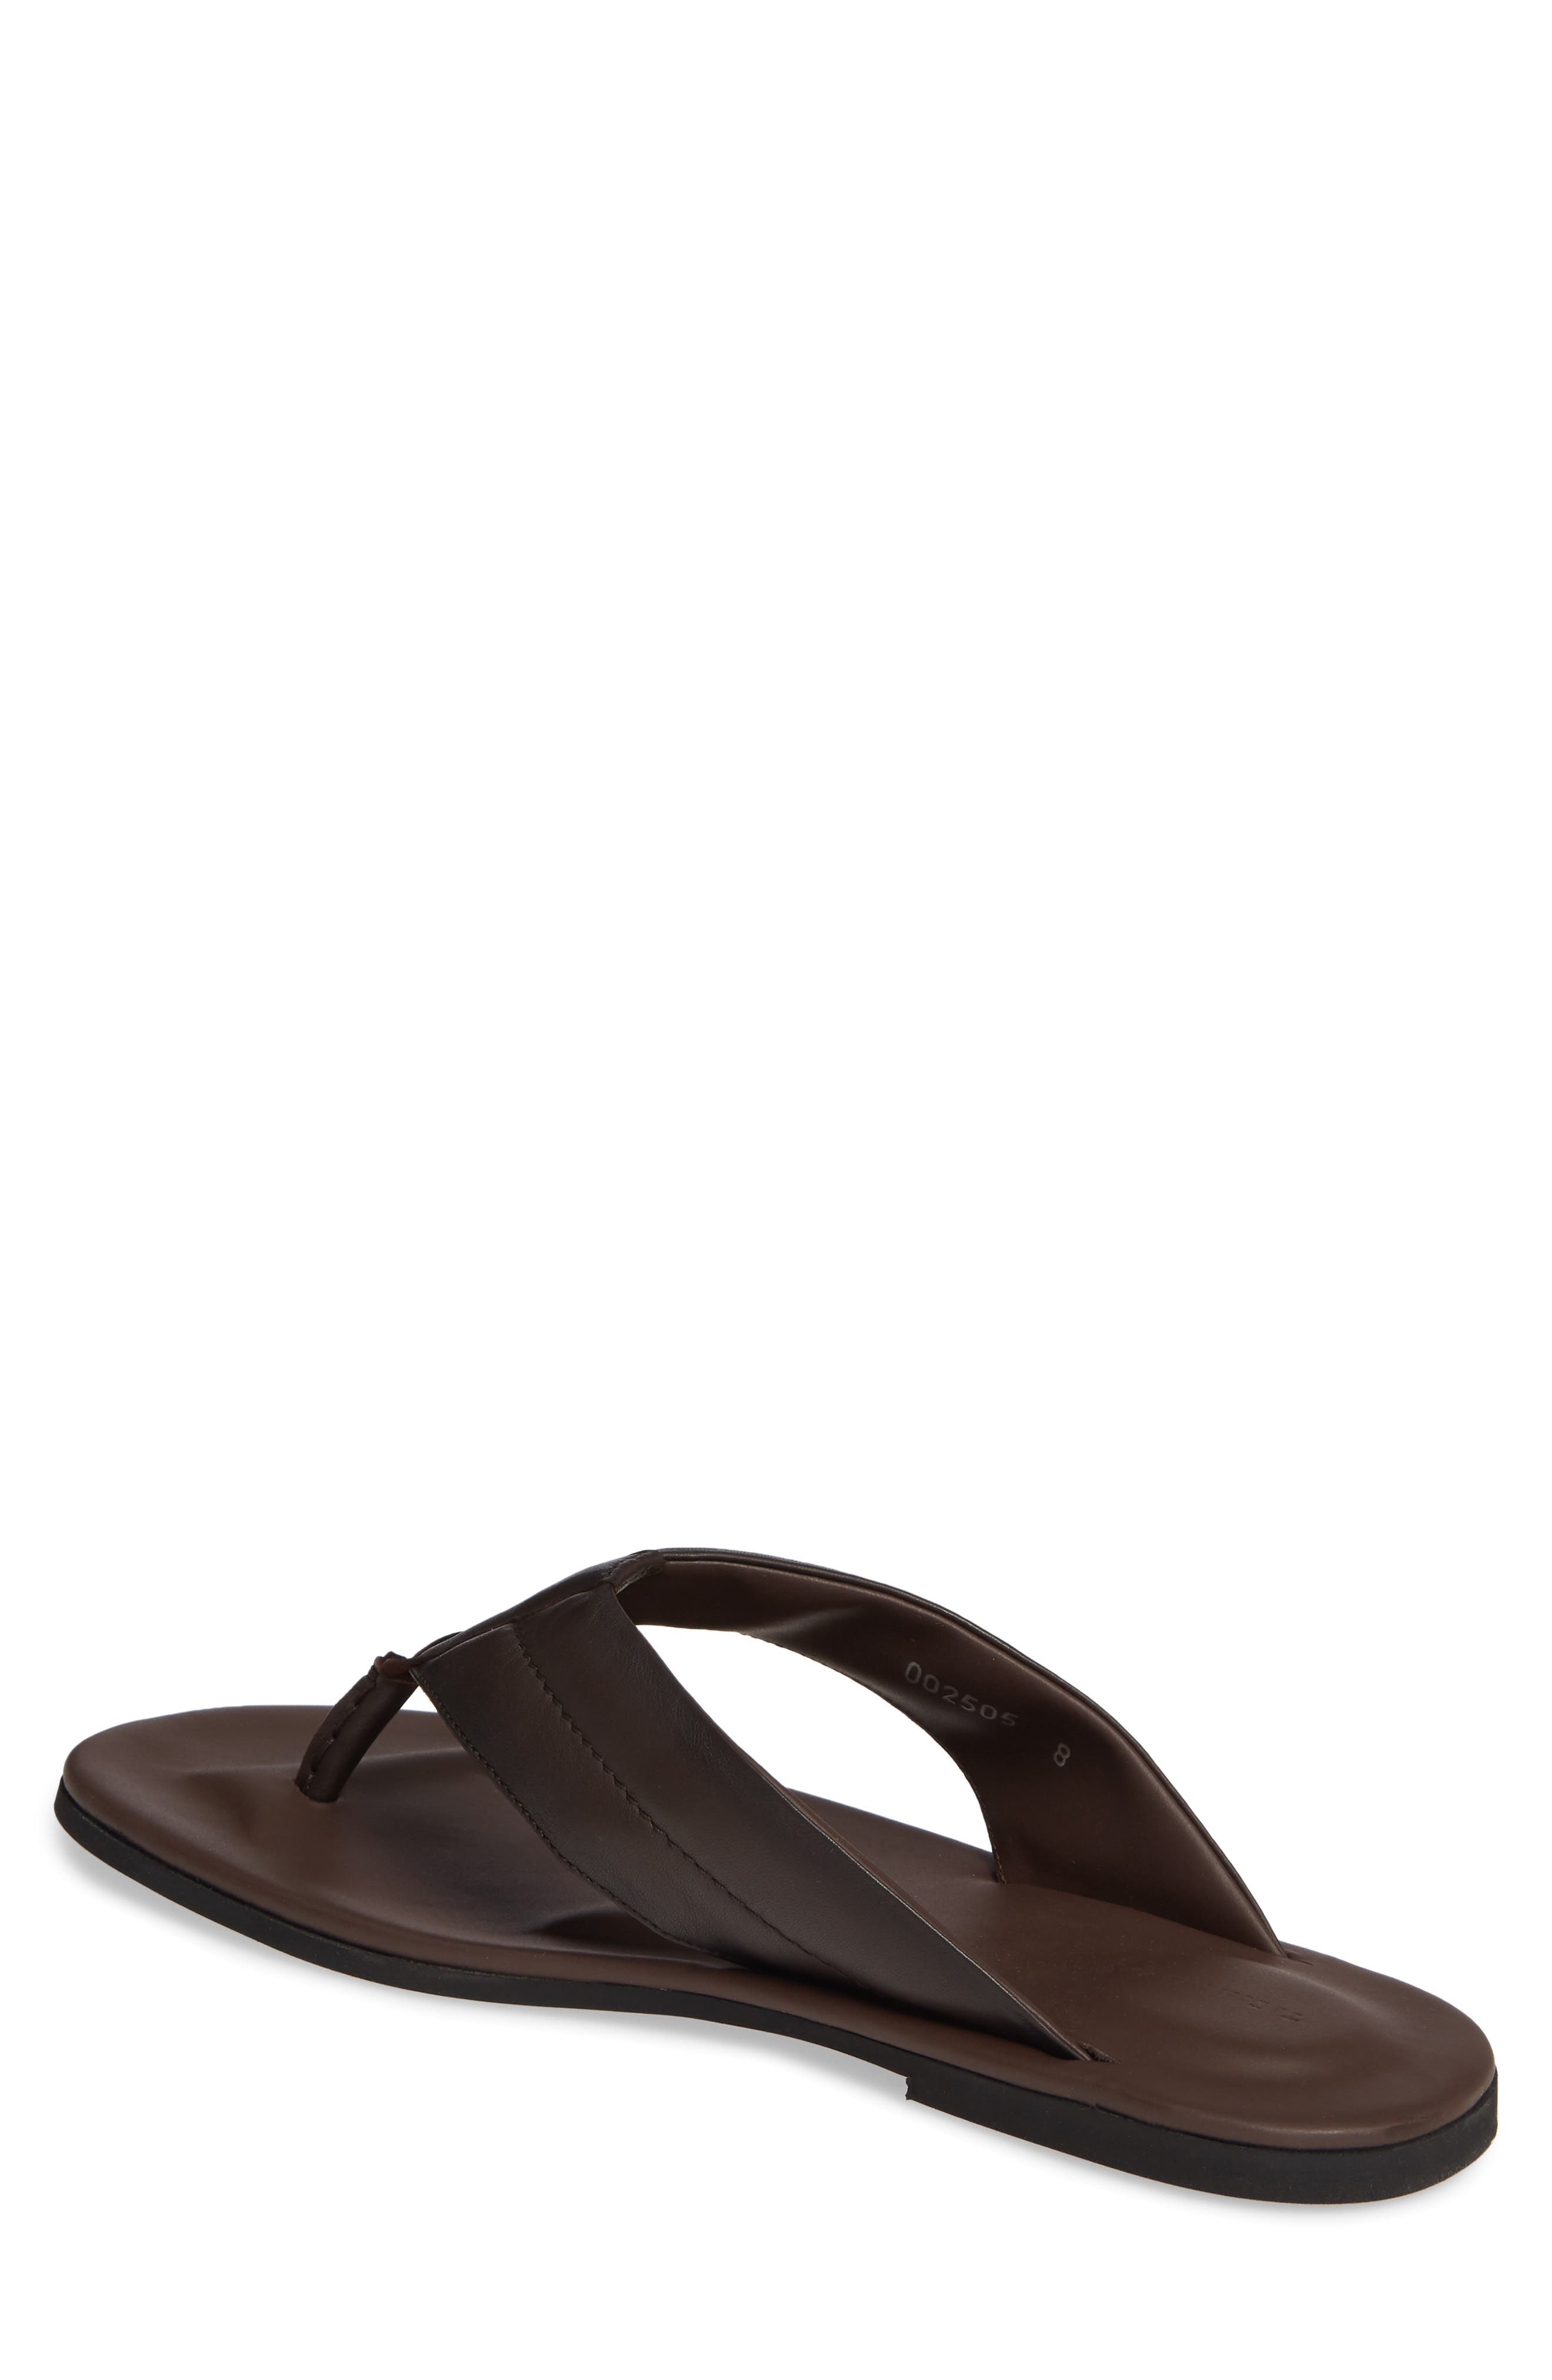 TO BOOT NEW YORK, Grande Flip Flop, Alternate thumbnail 2, color, BROWN LEATHER